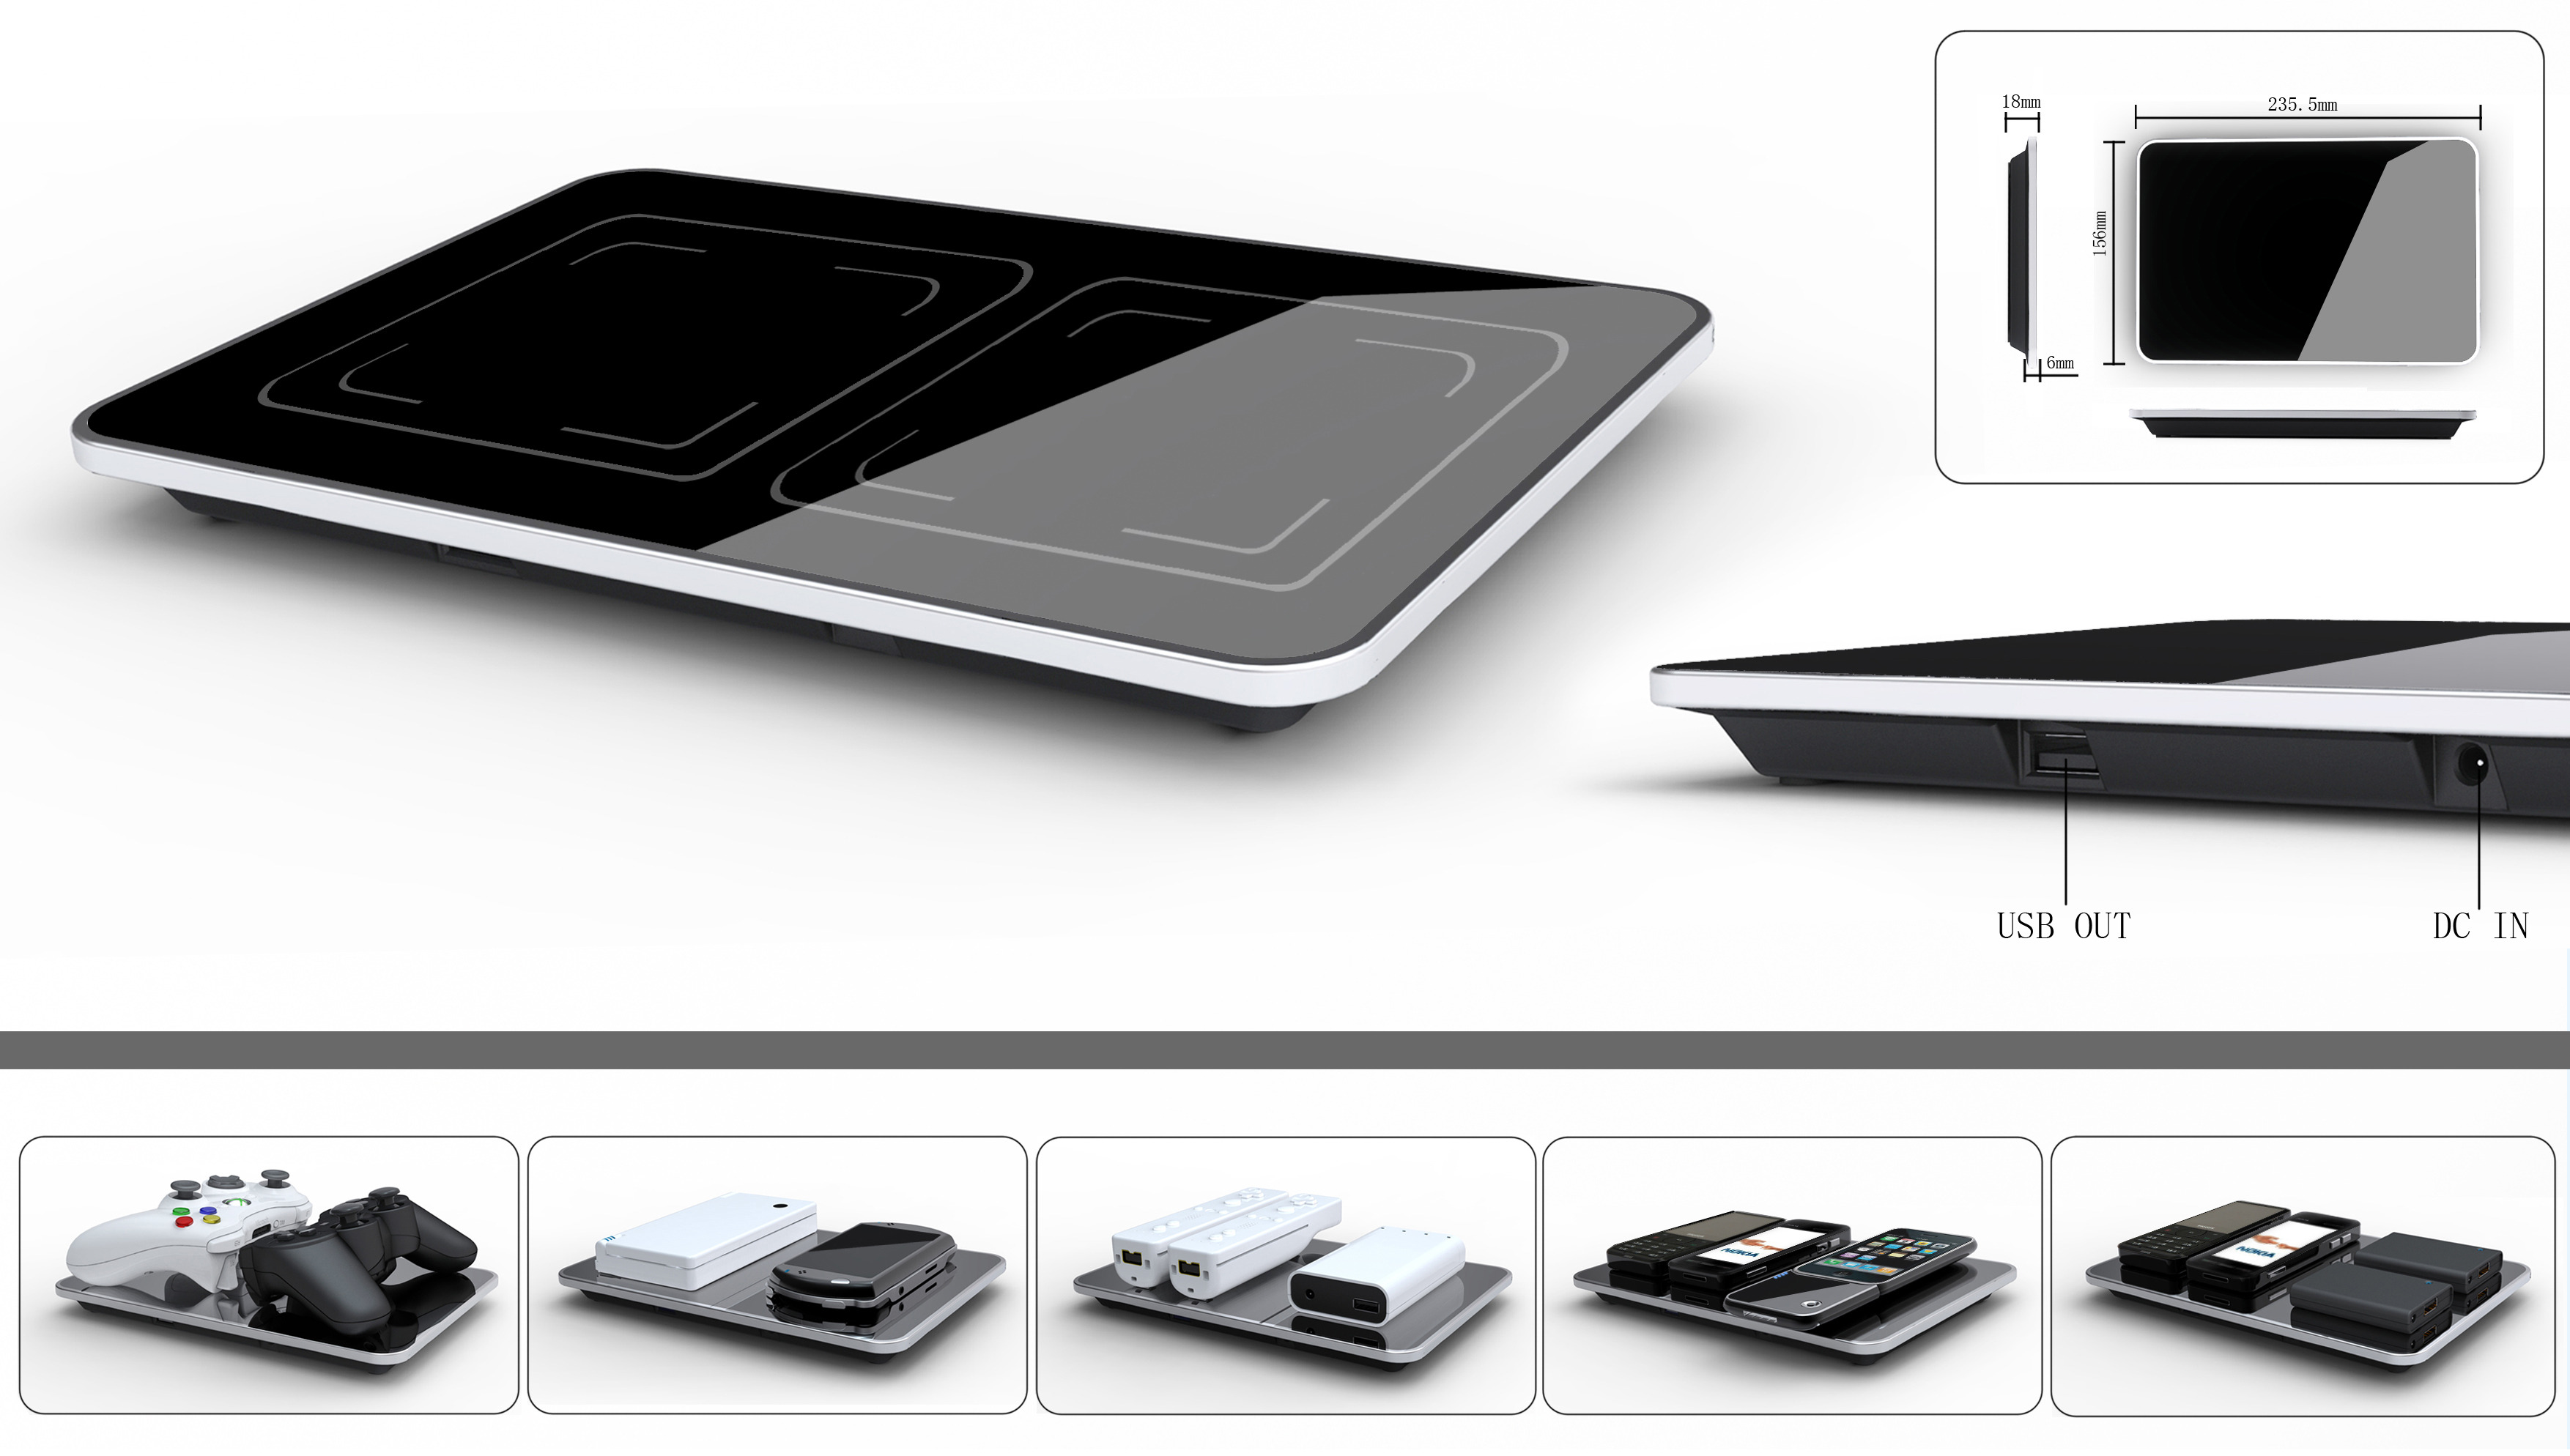 The ElectroHub wireless charging station comes with compliant batteries to replace your electronics' originals.